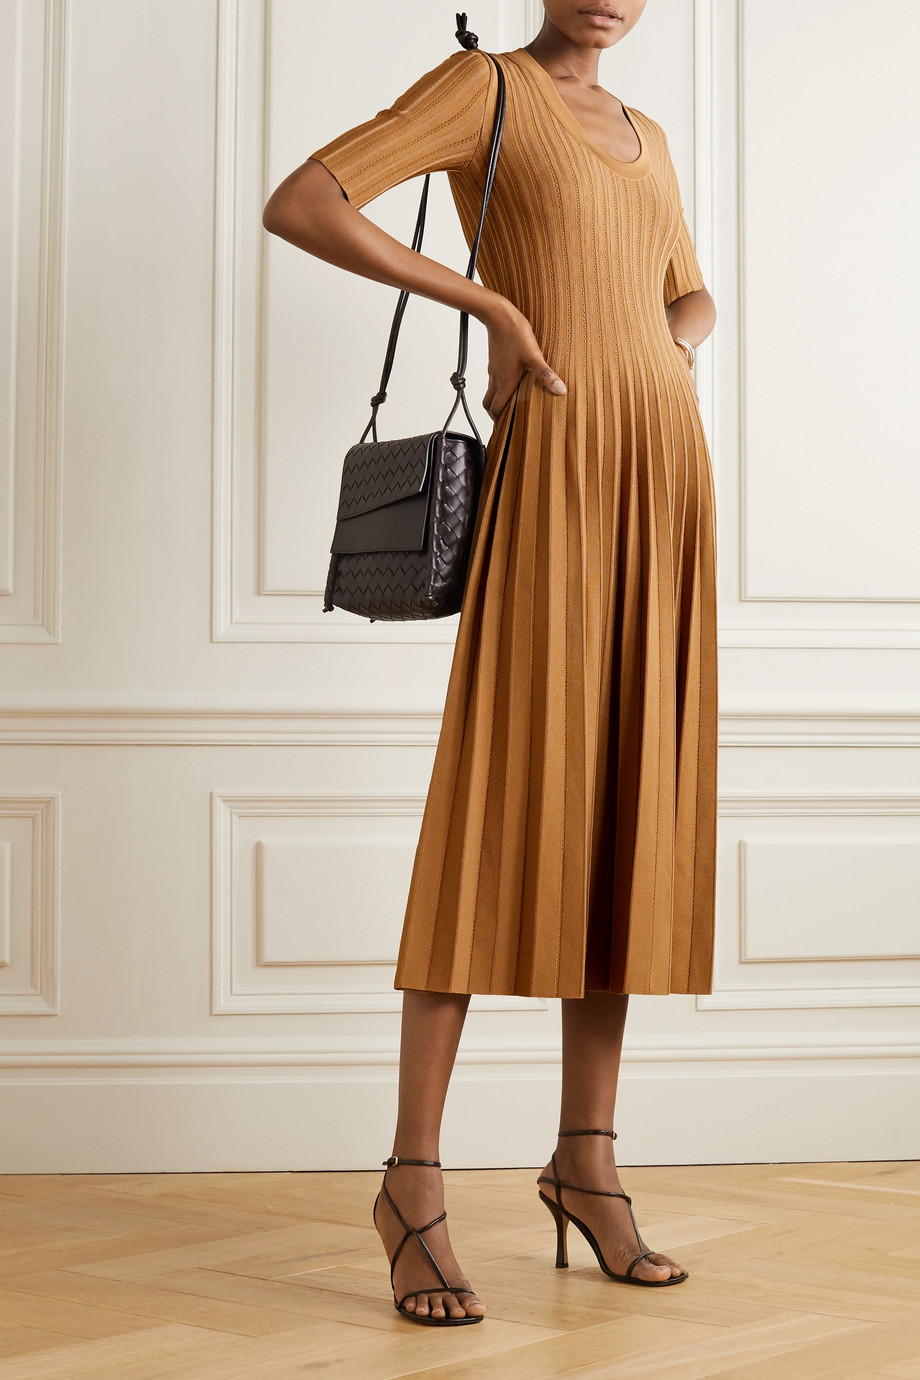 CASASOLA + NET SUSTAIN Eva ribbed stretch-knit midi dress